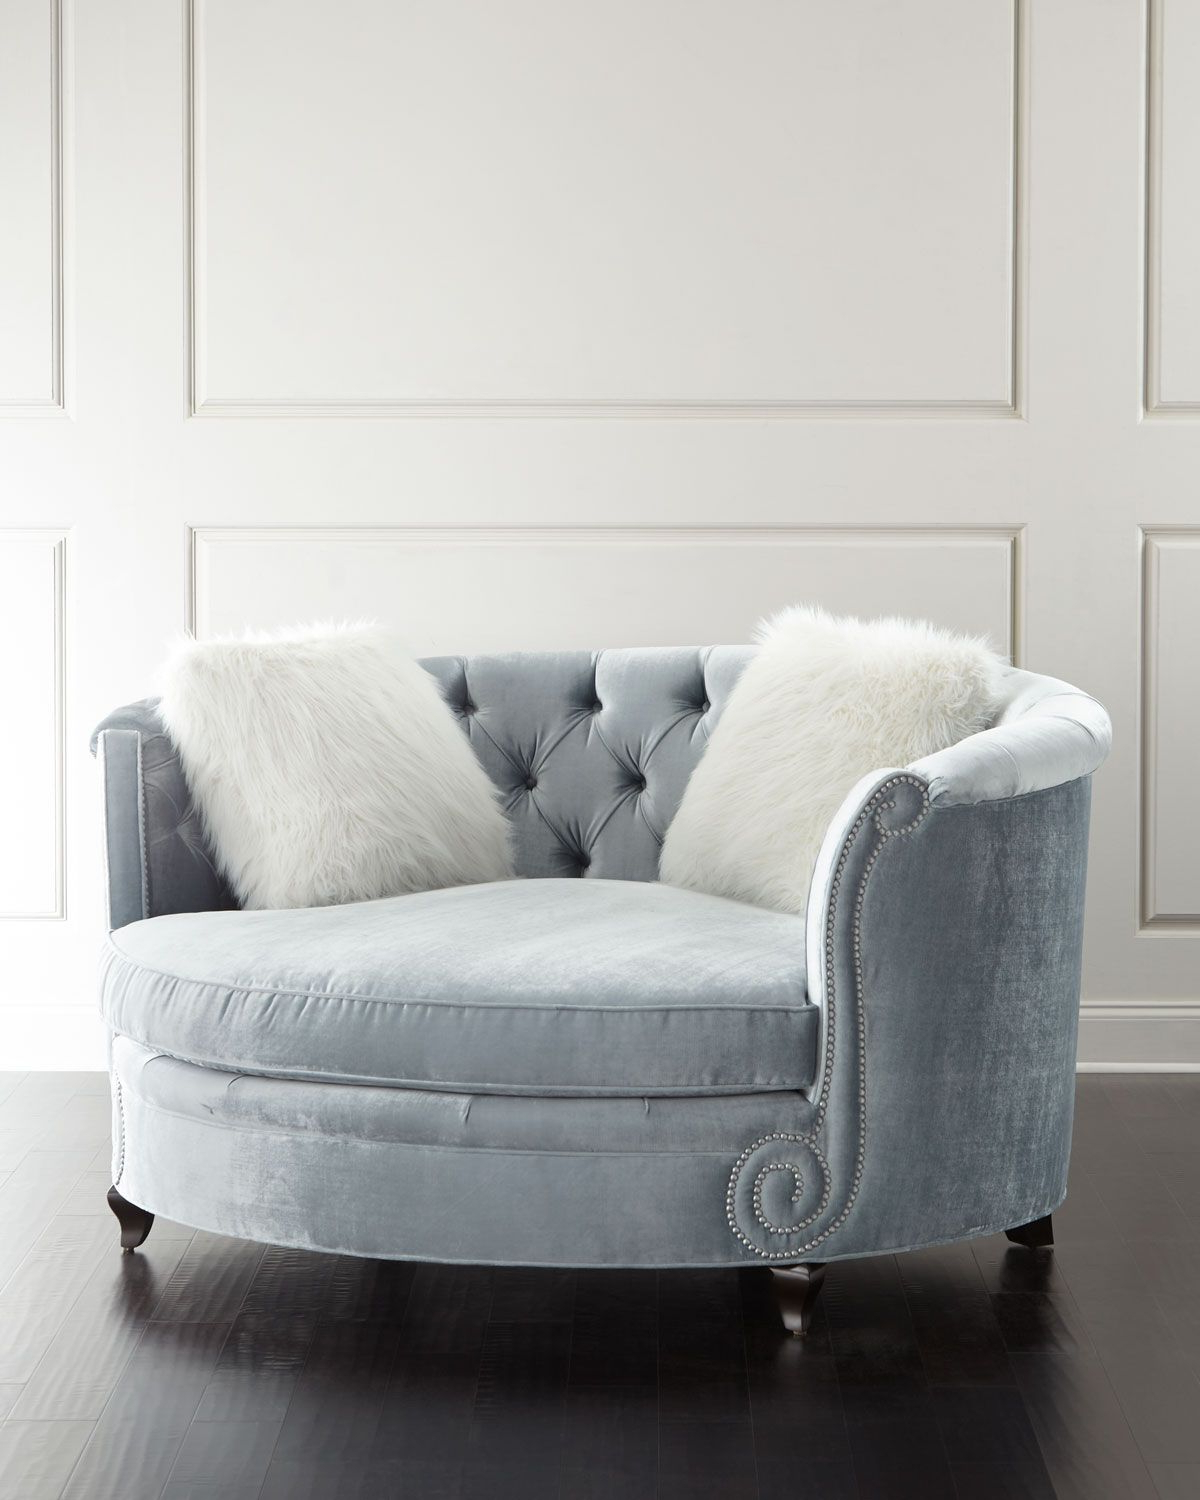 Cuddle Chair, Furniture Regarding Harper Down Oversized Sofa Chairs (View 1 of 20)